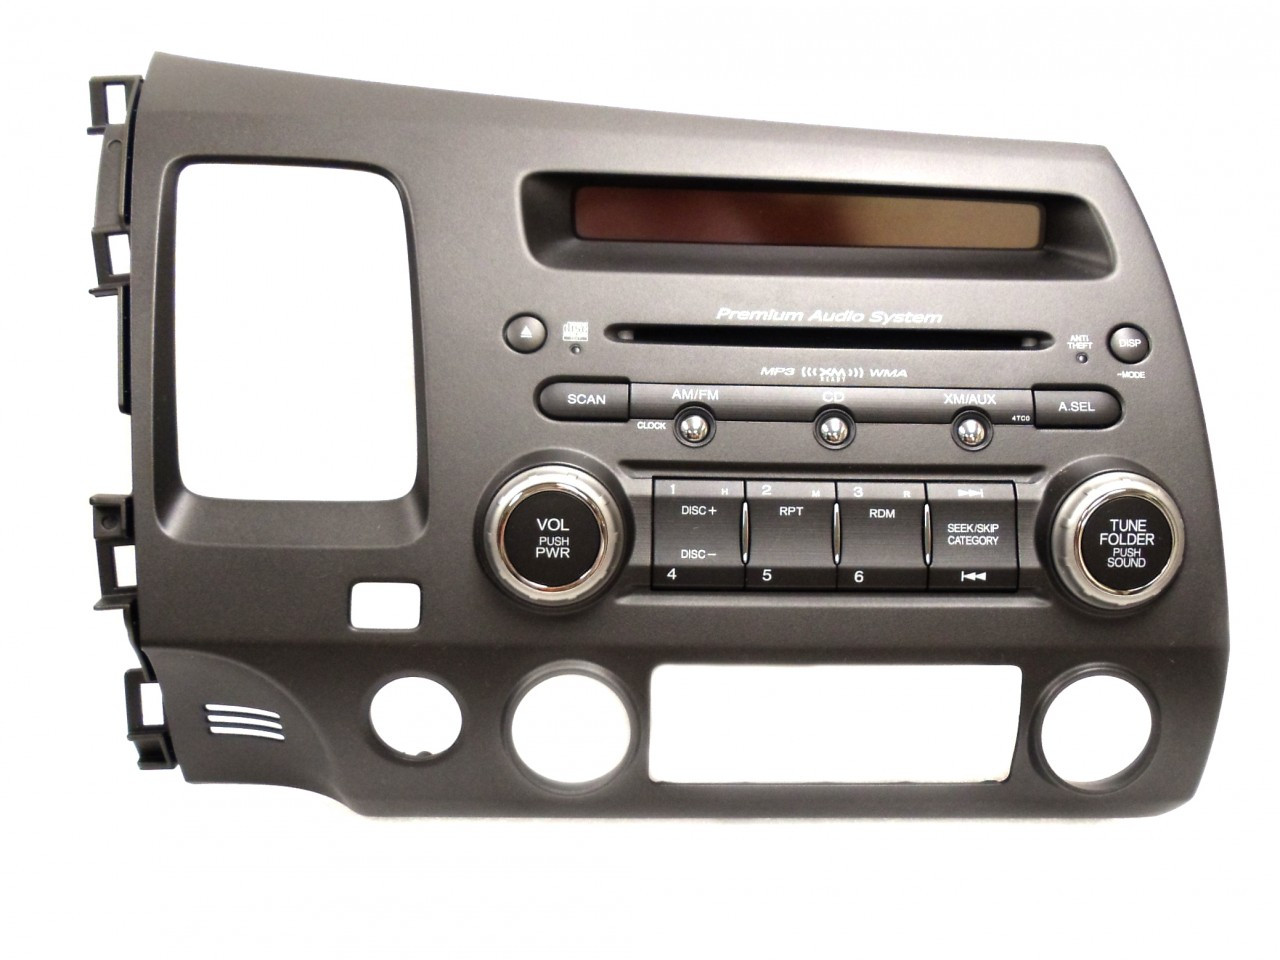 4tc0 2006 07 08 2011 honda civic radio stereo mp3 cd player. Black Bedroom Furniture Sets. Home Design Ideas